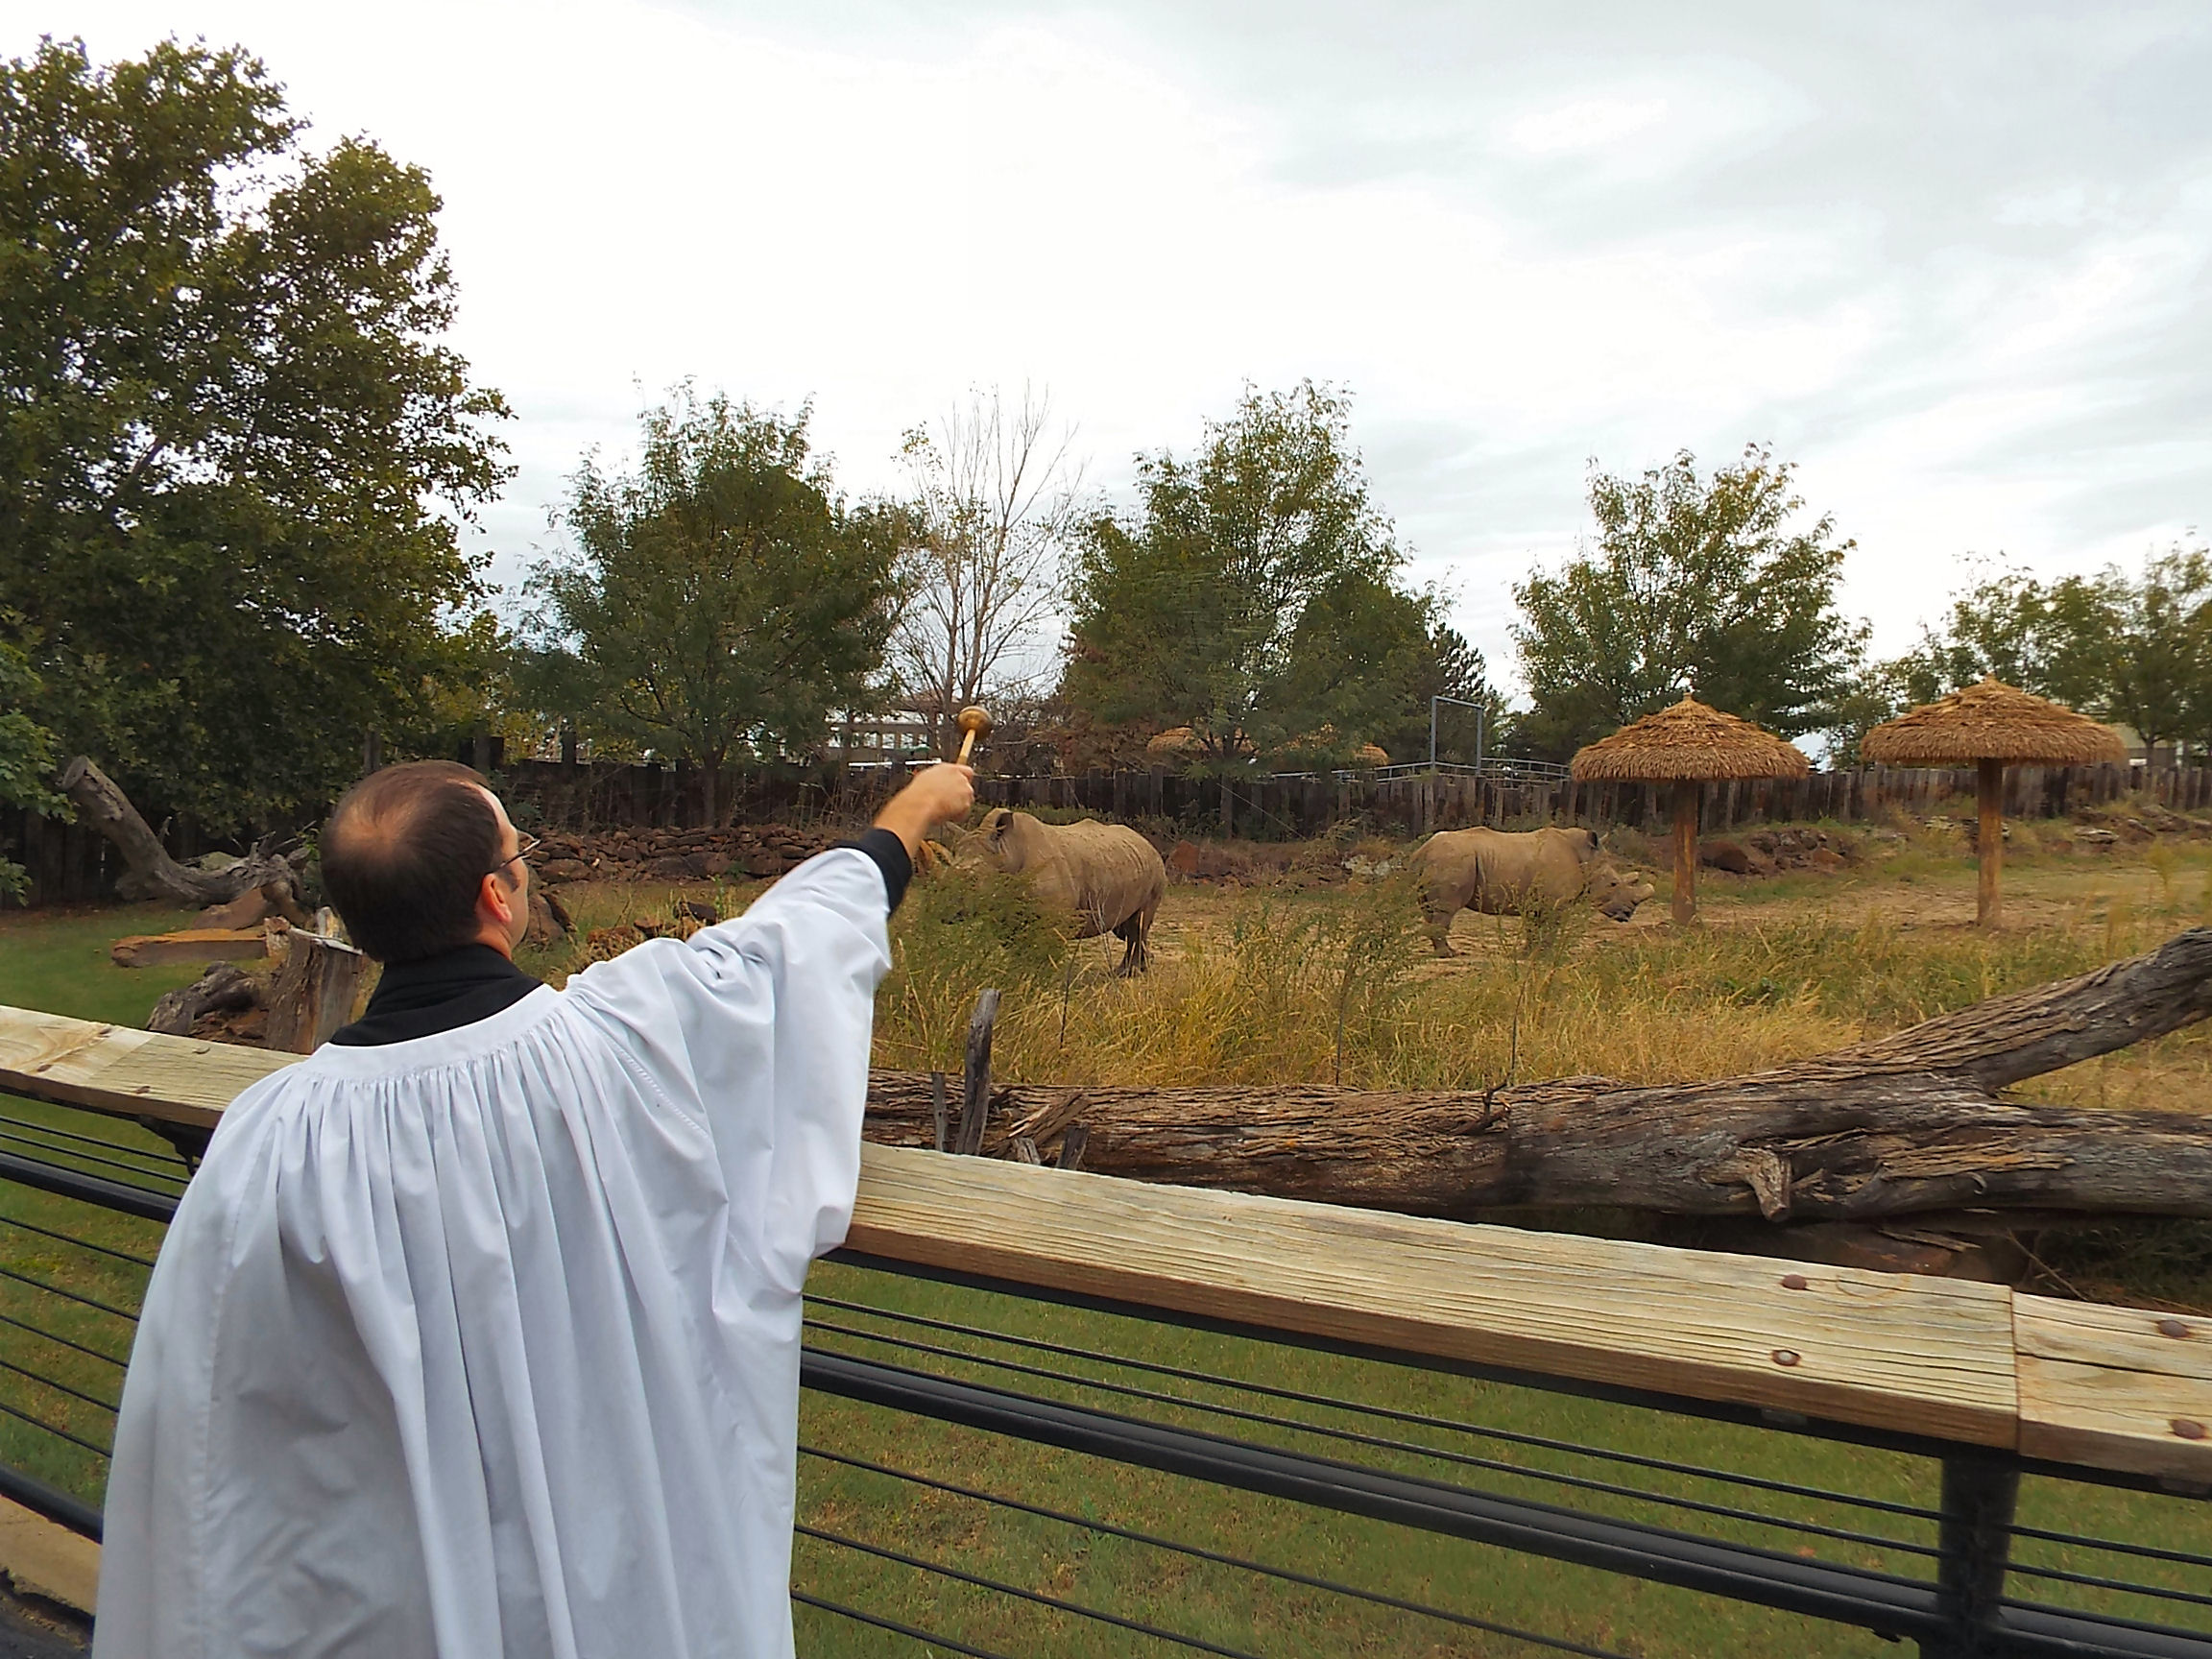 Father Benjamin offers a blessing to the rhinos at Rolling Hills Zoo.